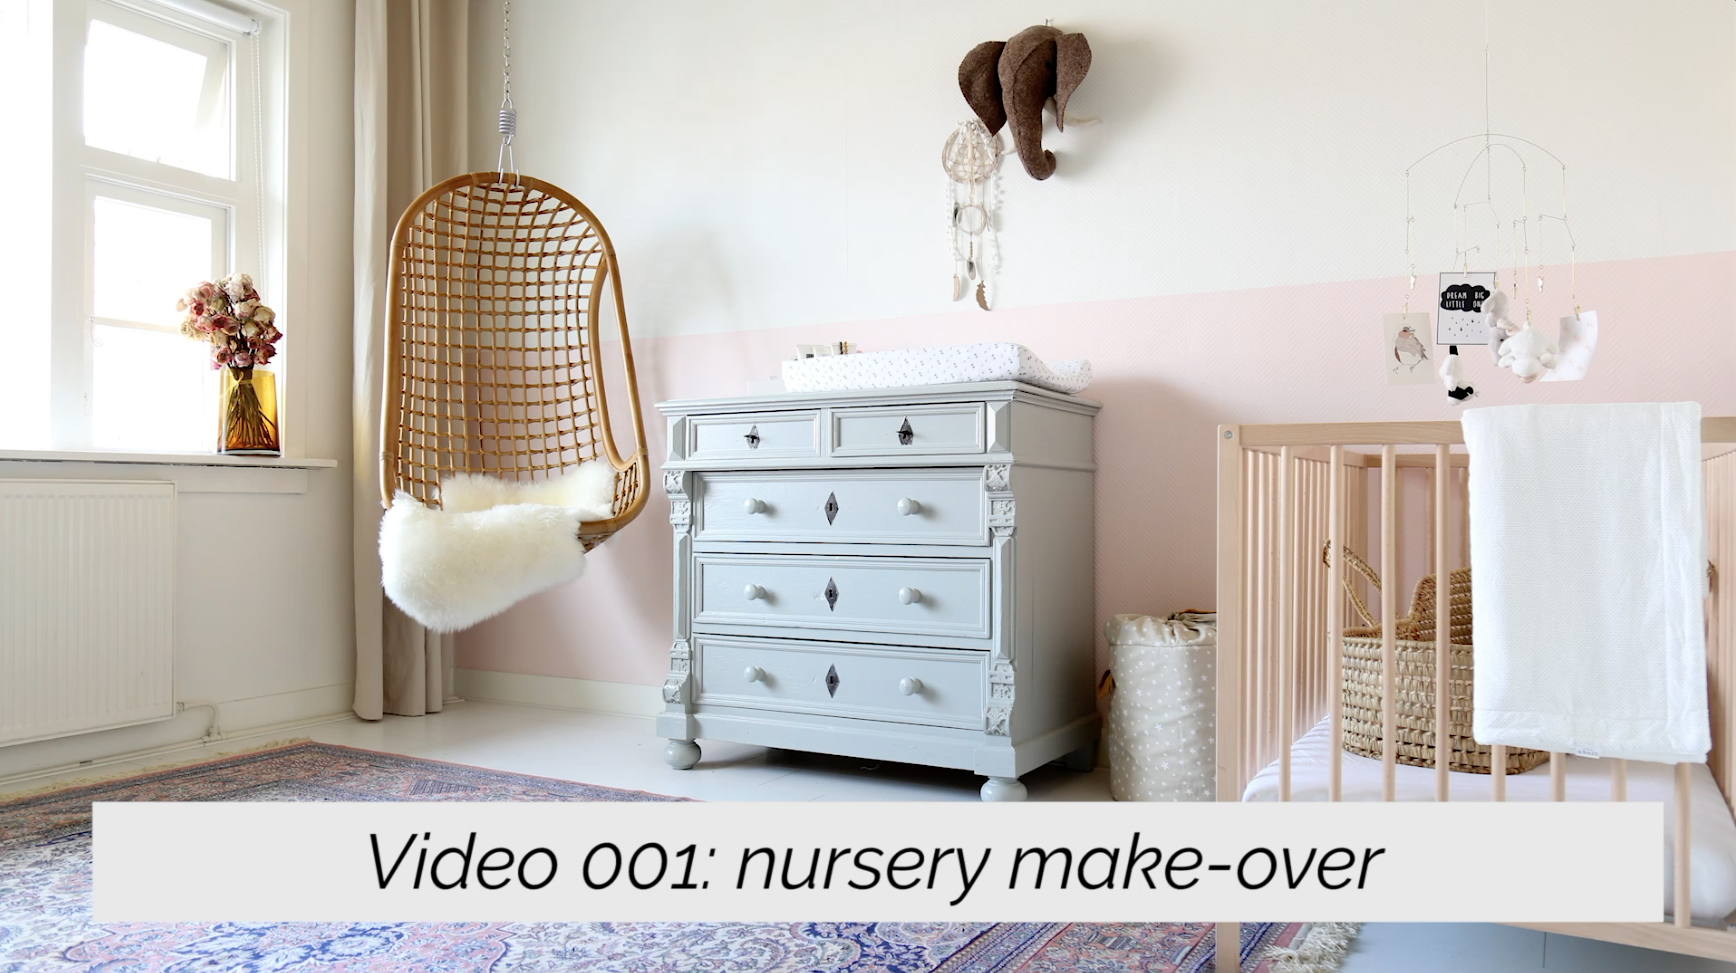 Nursery makeover (with video!)